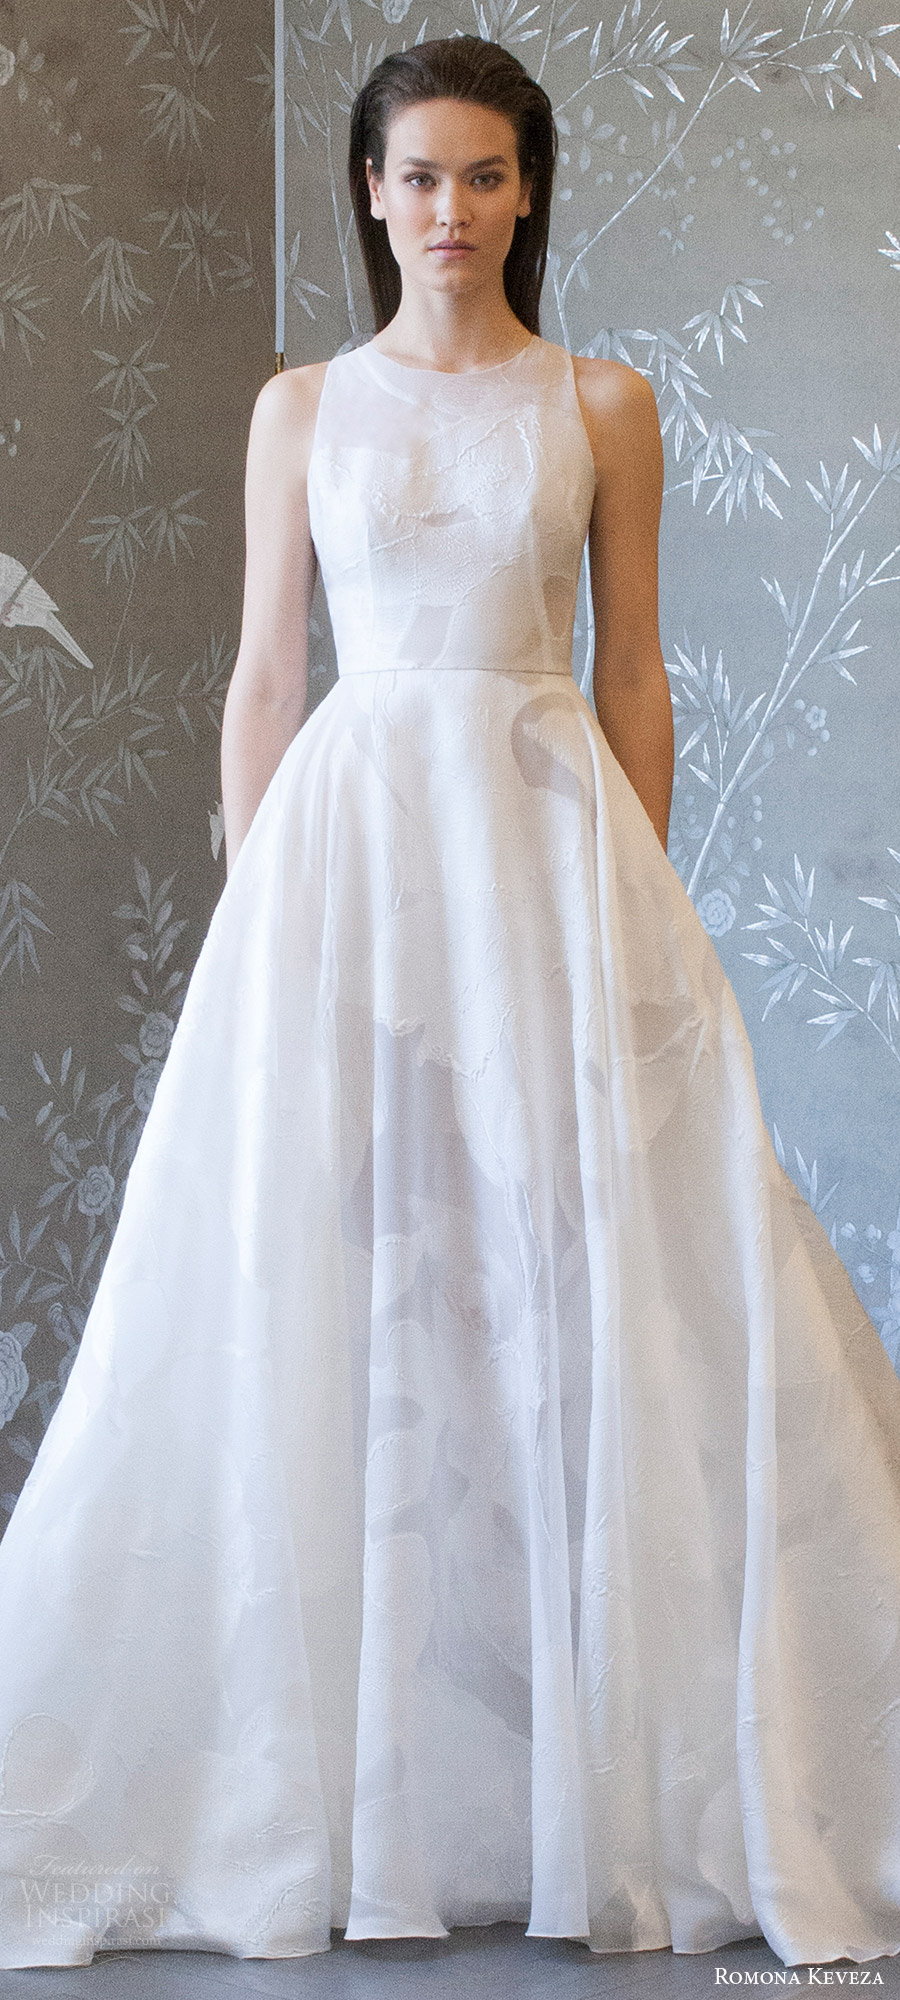 romona keveza spring 2018 bridal sleeveless jewel neck a line wedding dress (rk8404) mv train modern romantic